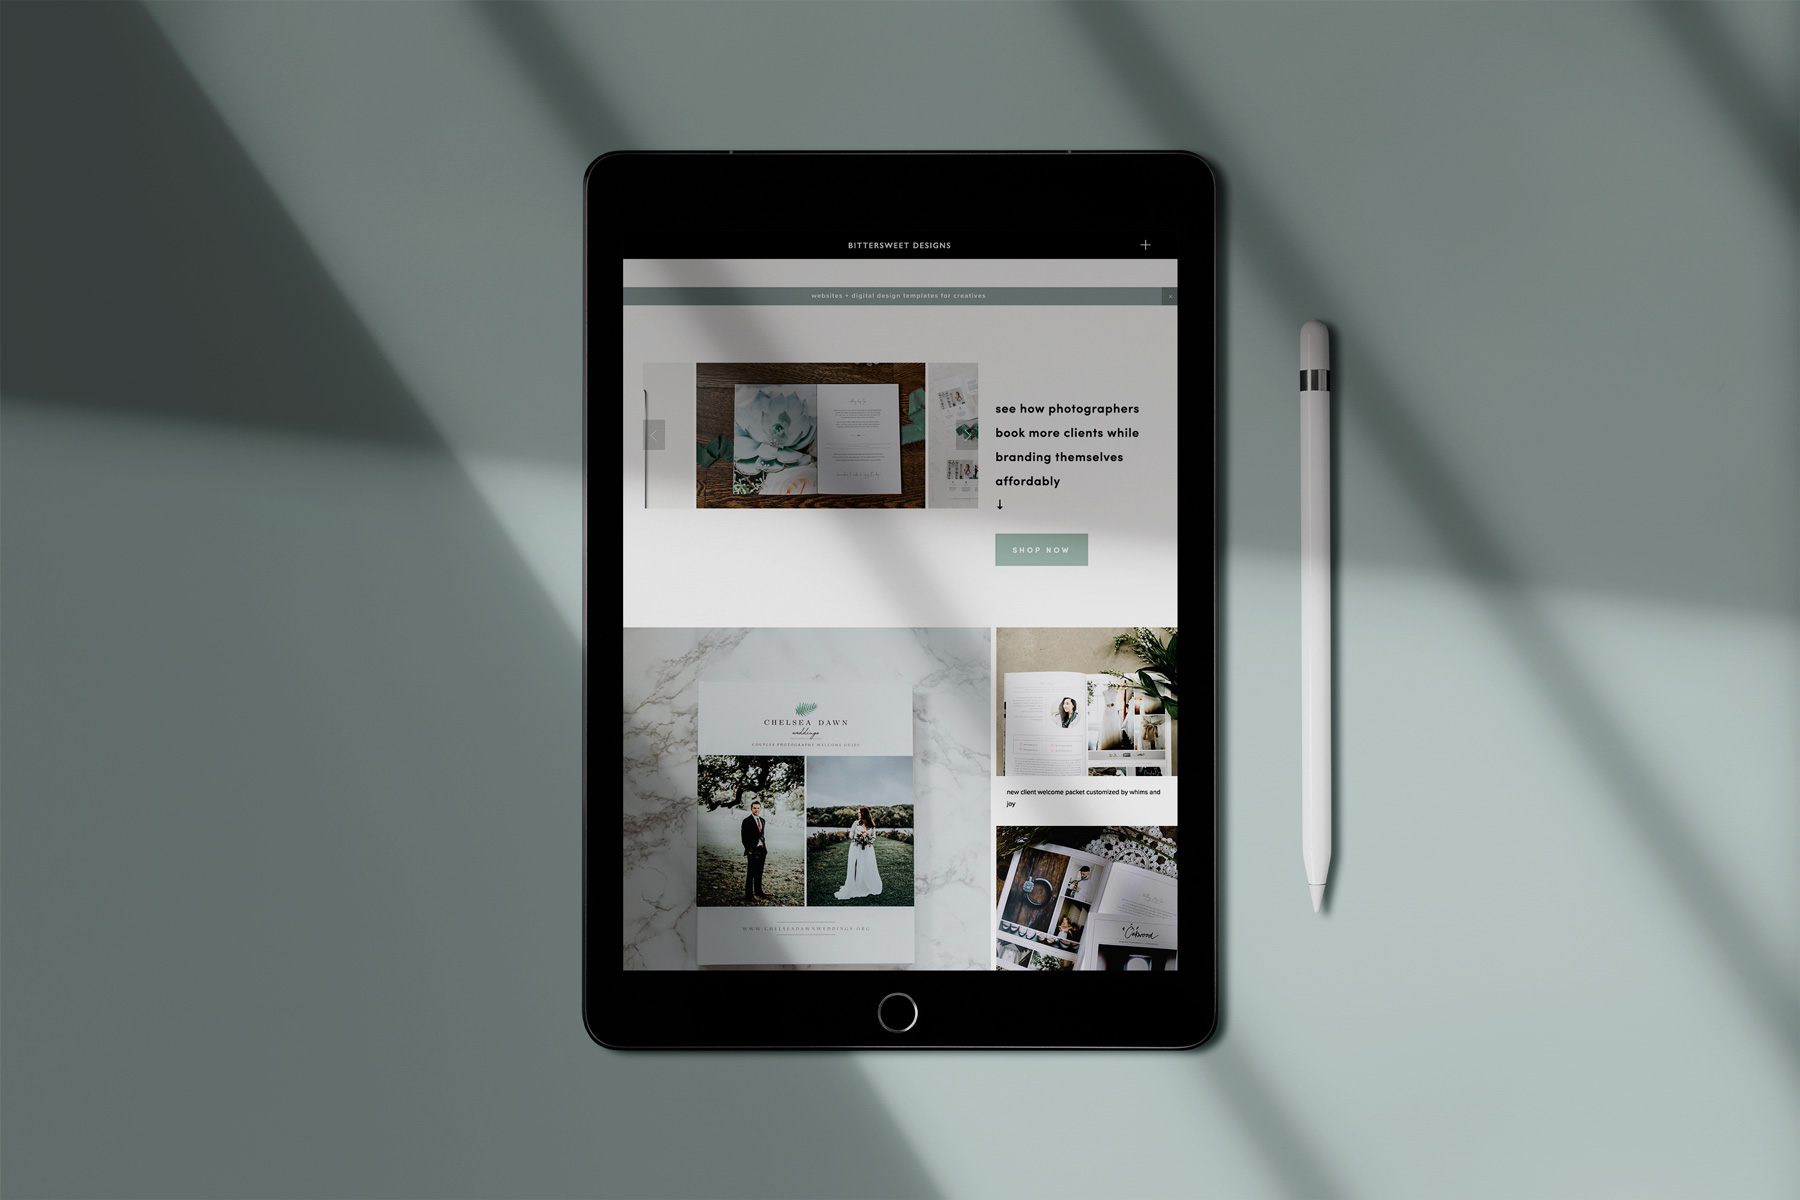 squarespace-tips-for-photographers.jpg